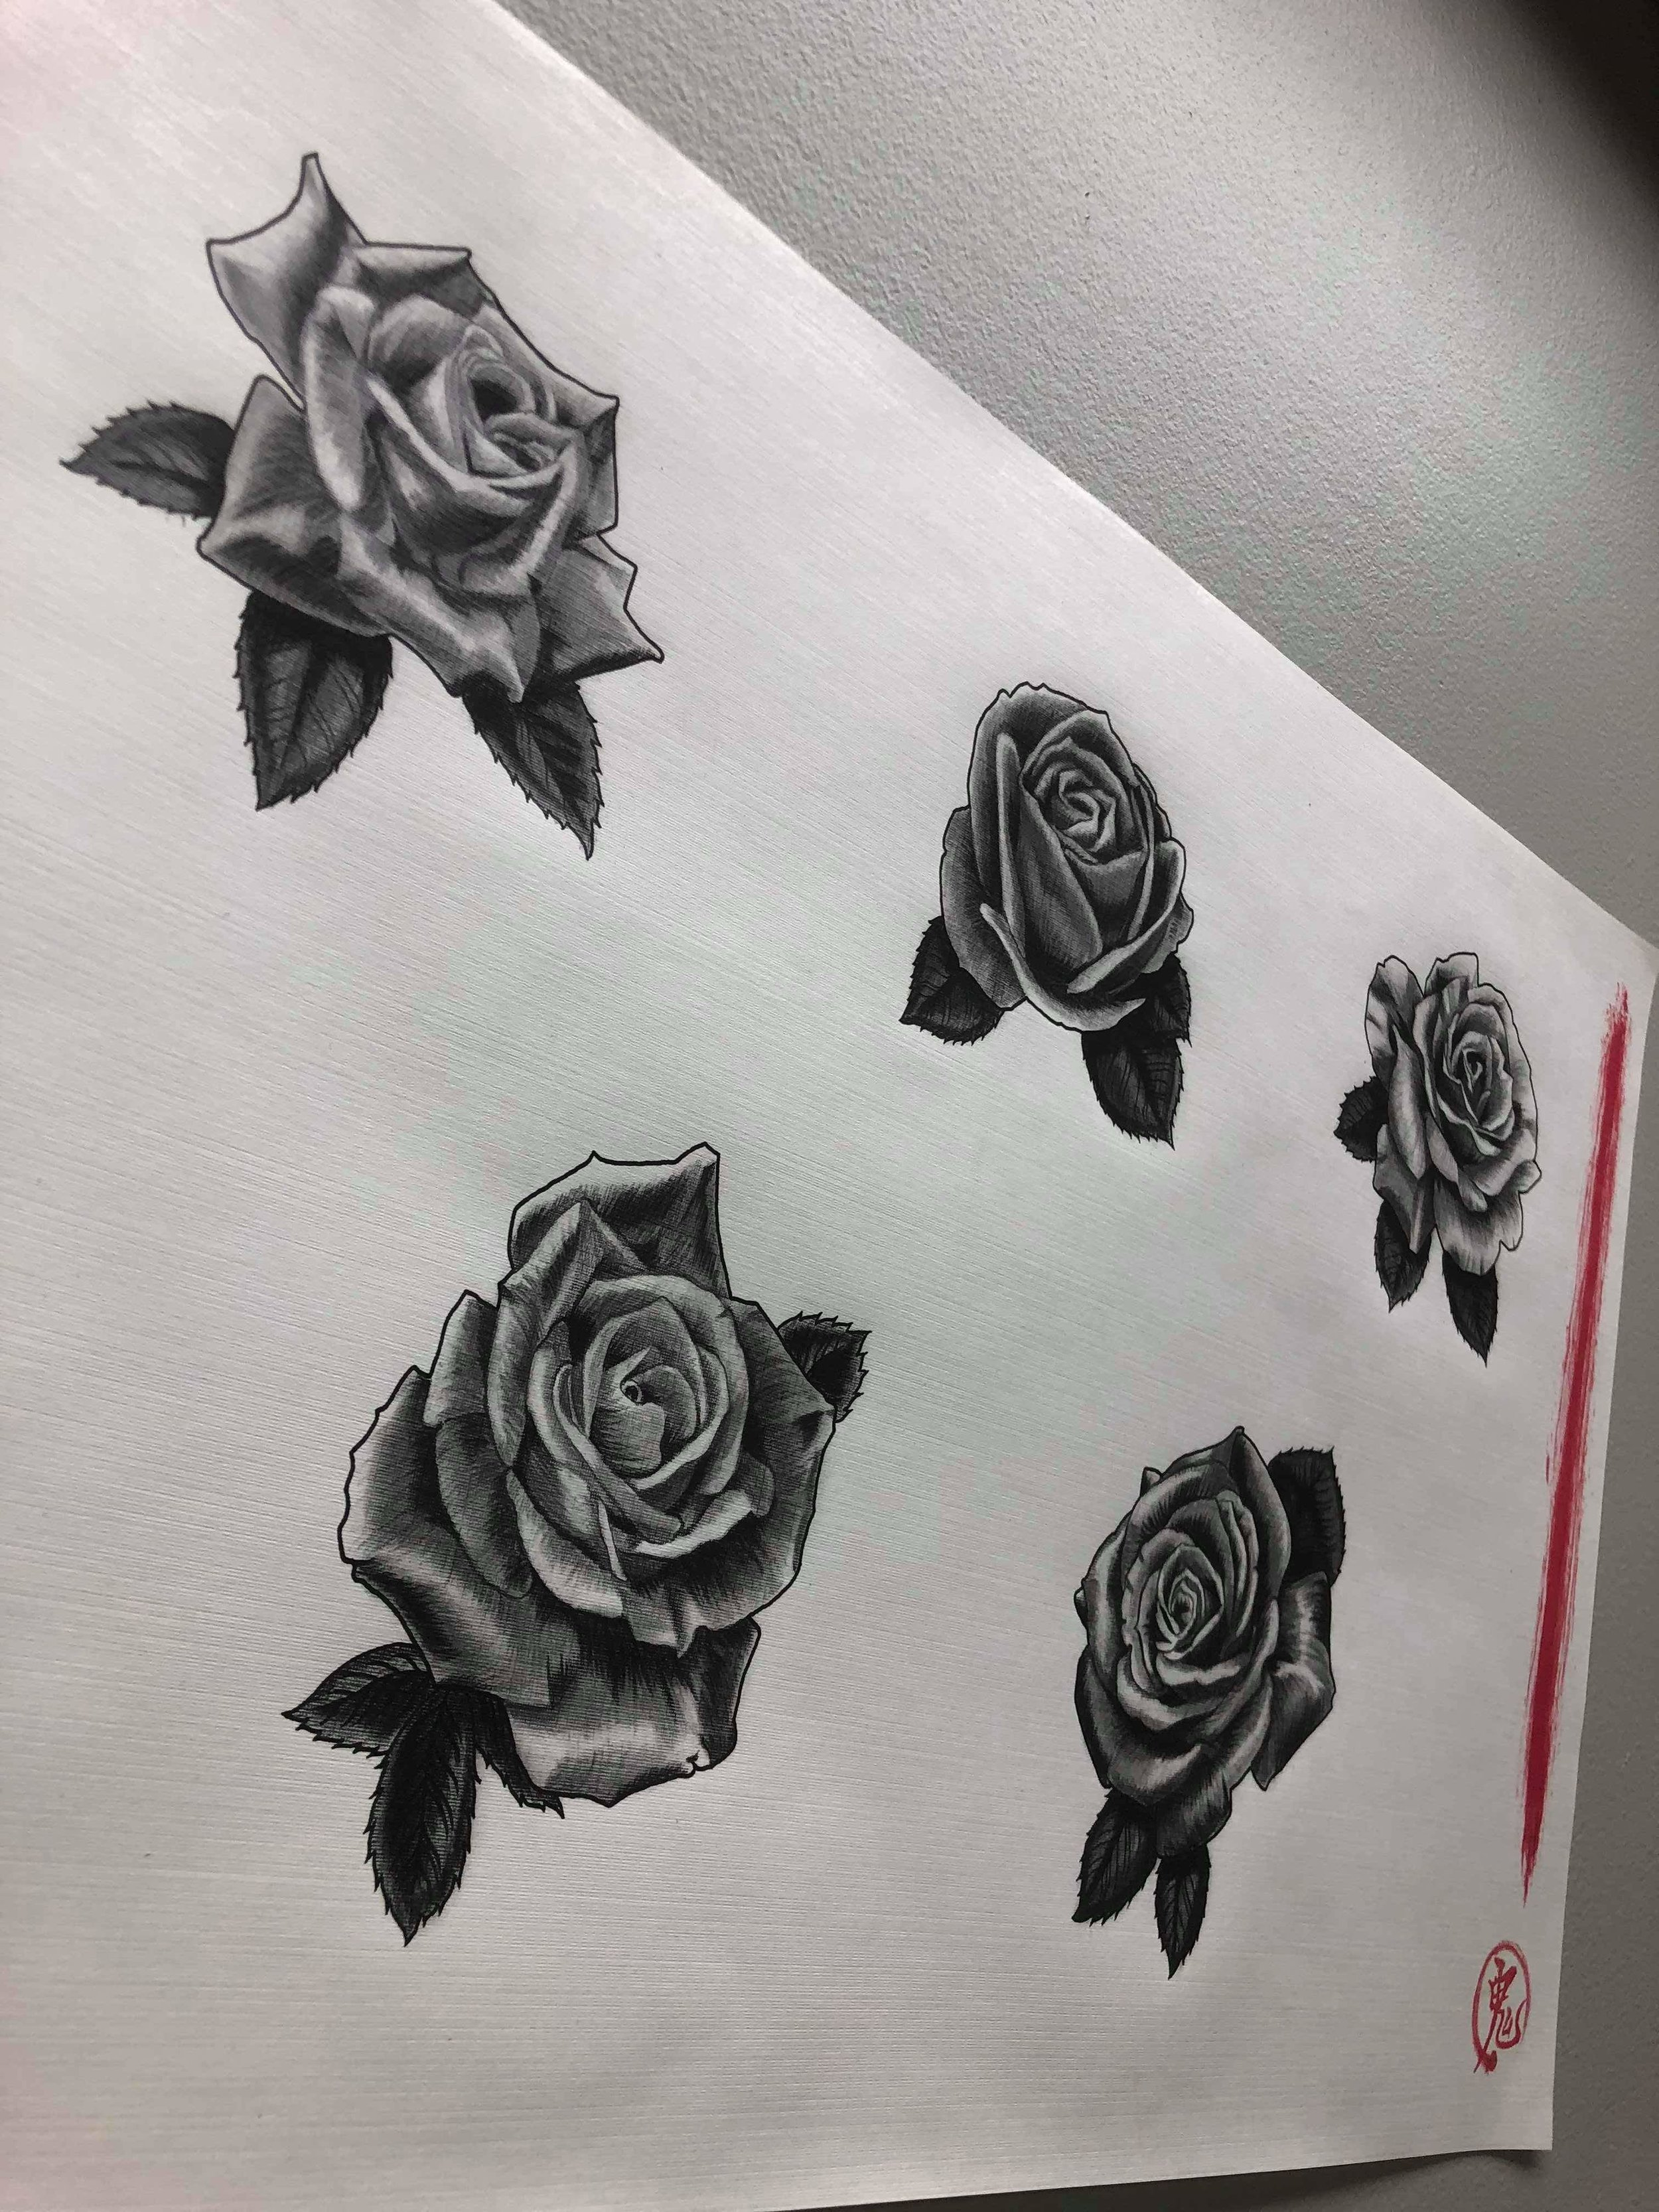 Reed Wu - Reed will be doing these flash rose designs he made for $50 each. There will be no limit on how many times these will be done.